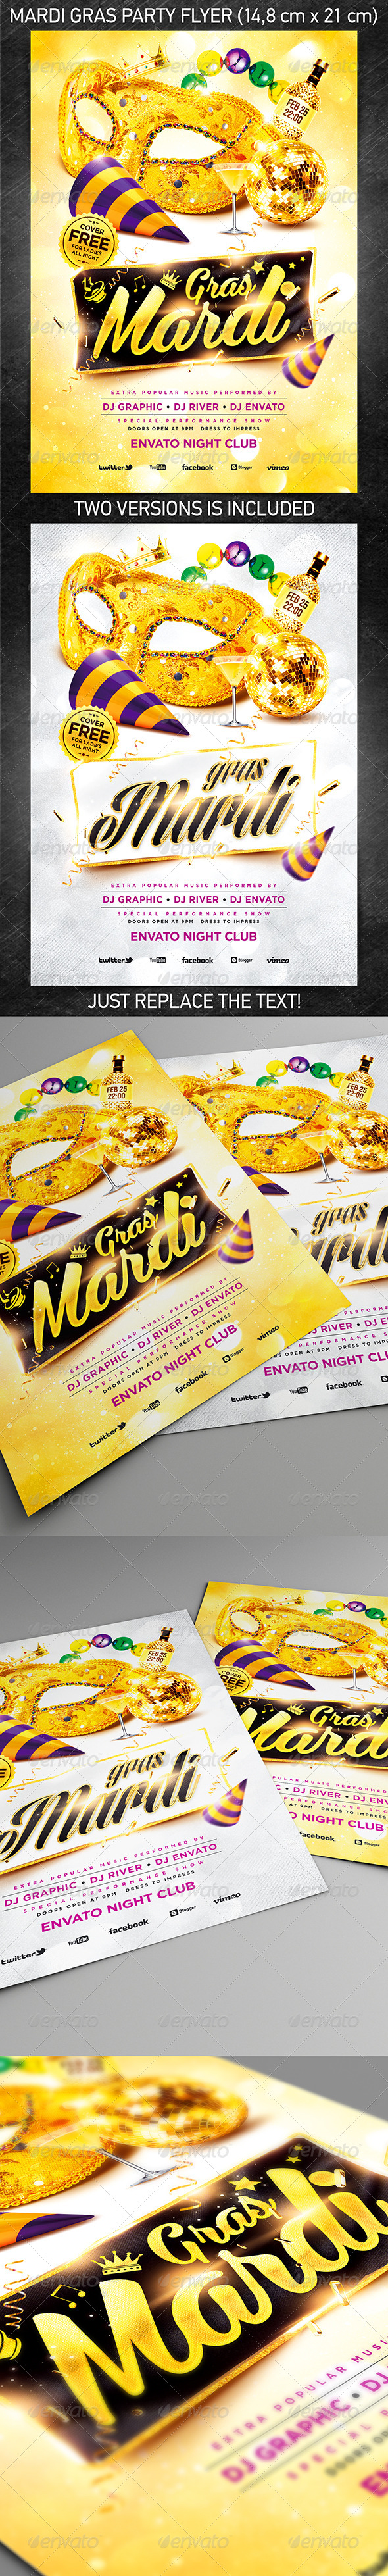 Mardi Gras Party Flyer Vol.3 - Holidays Events